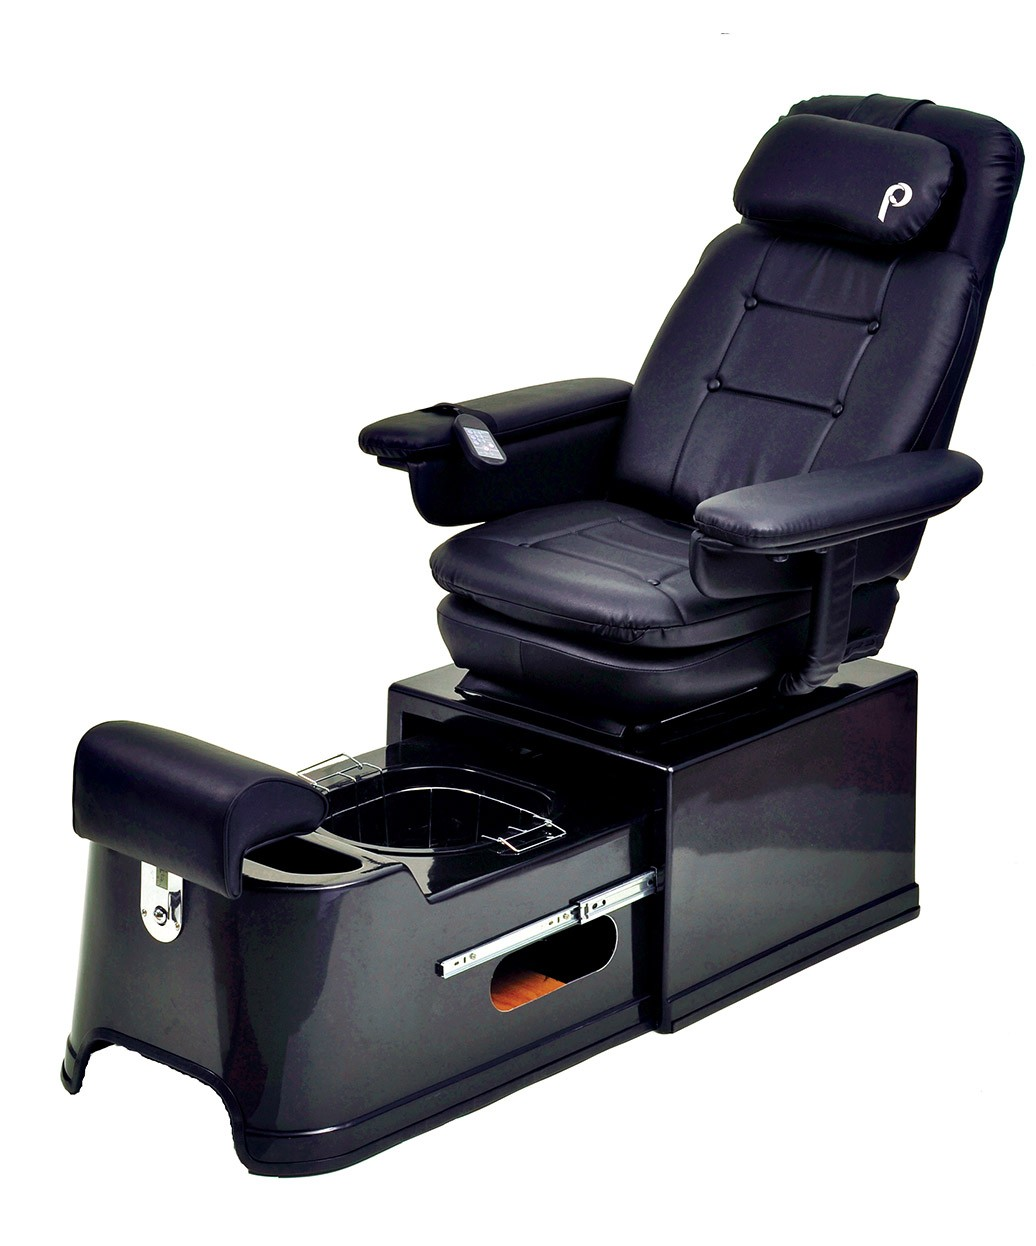 Pibbs Ps92 Fiberglass Footsie Pedicure Chair From Buy Rite